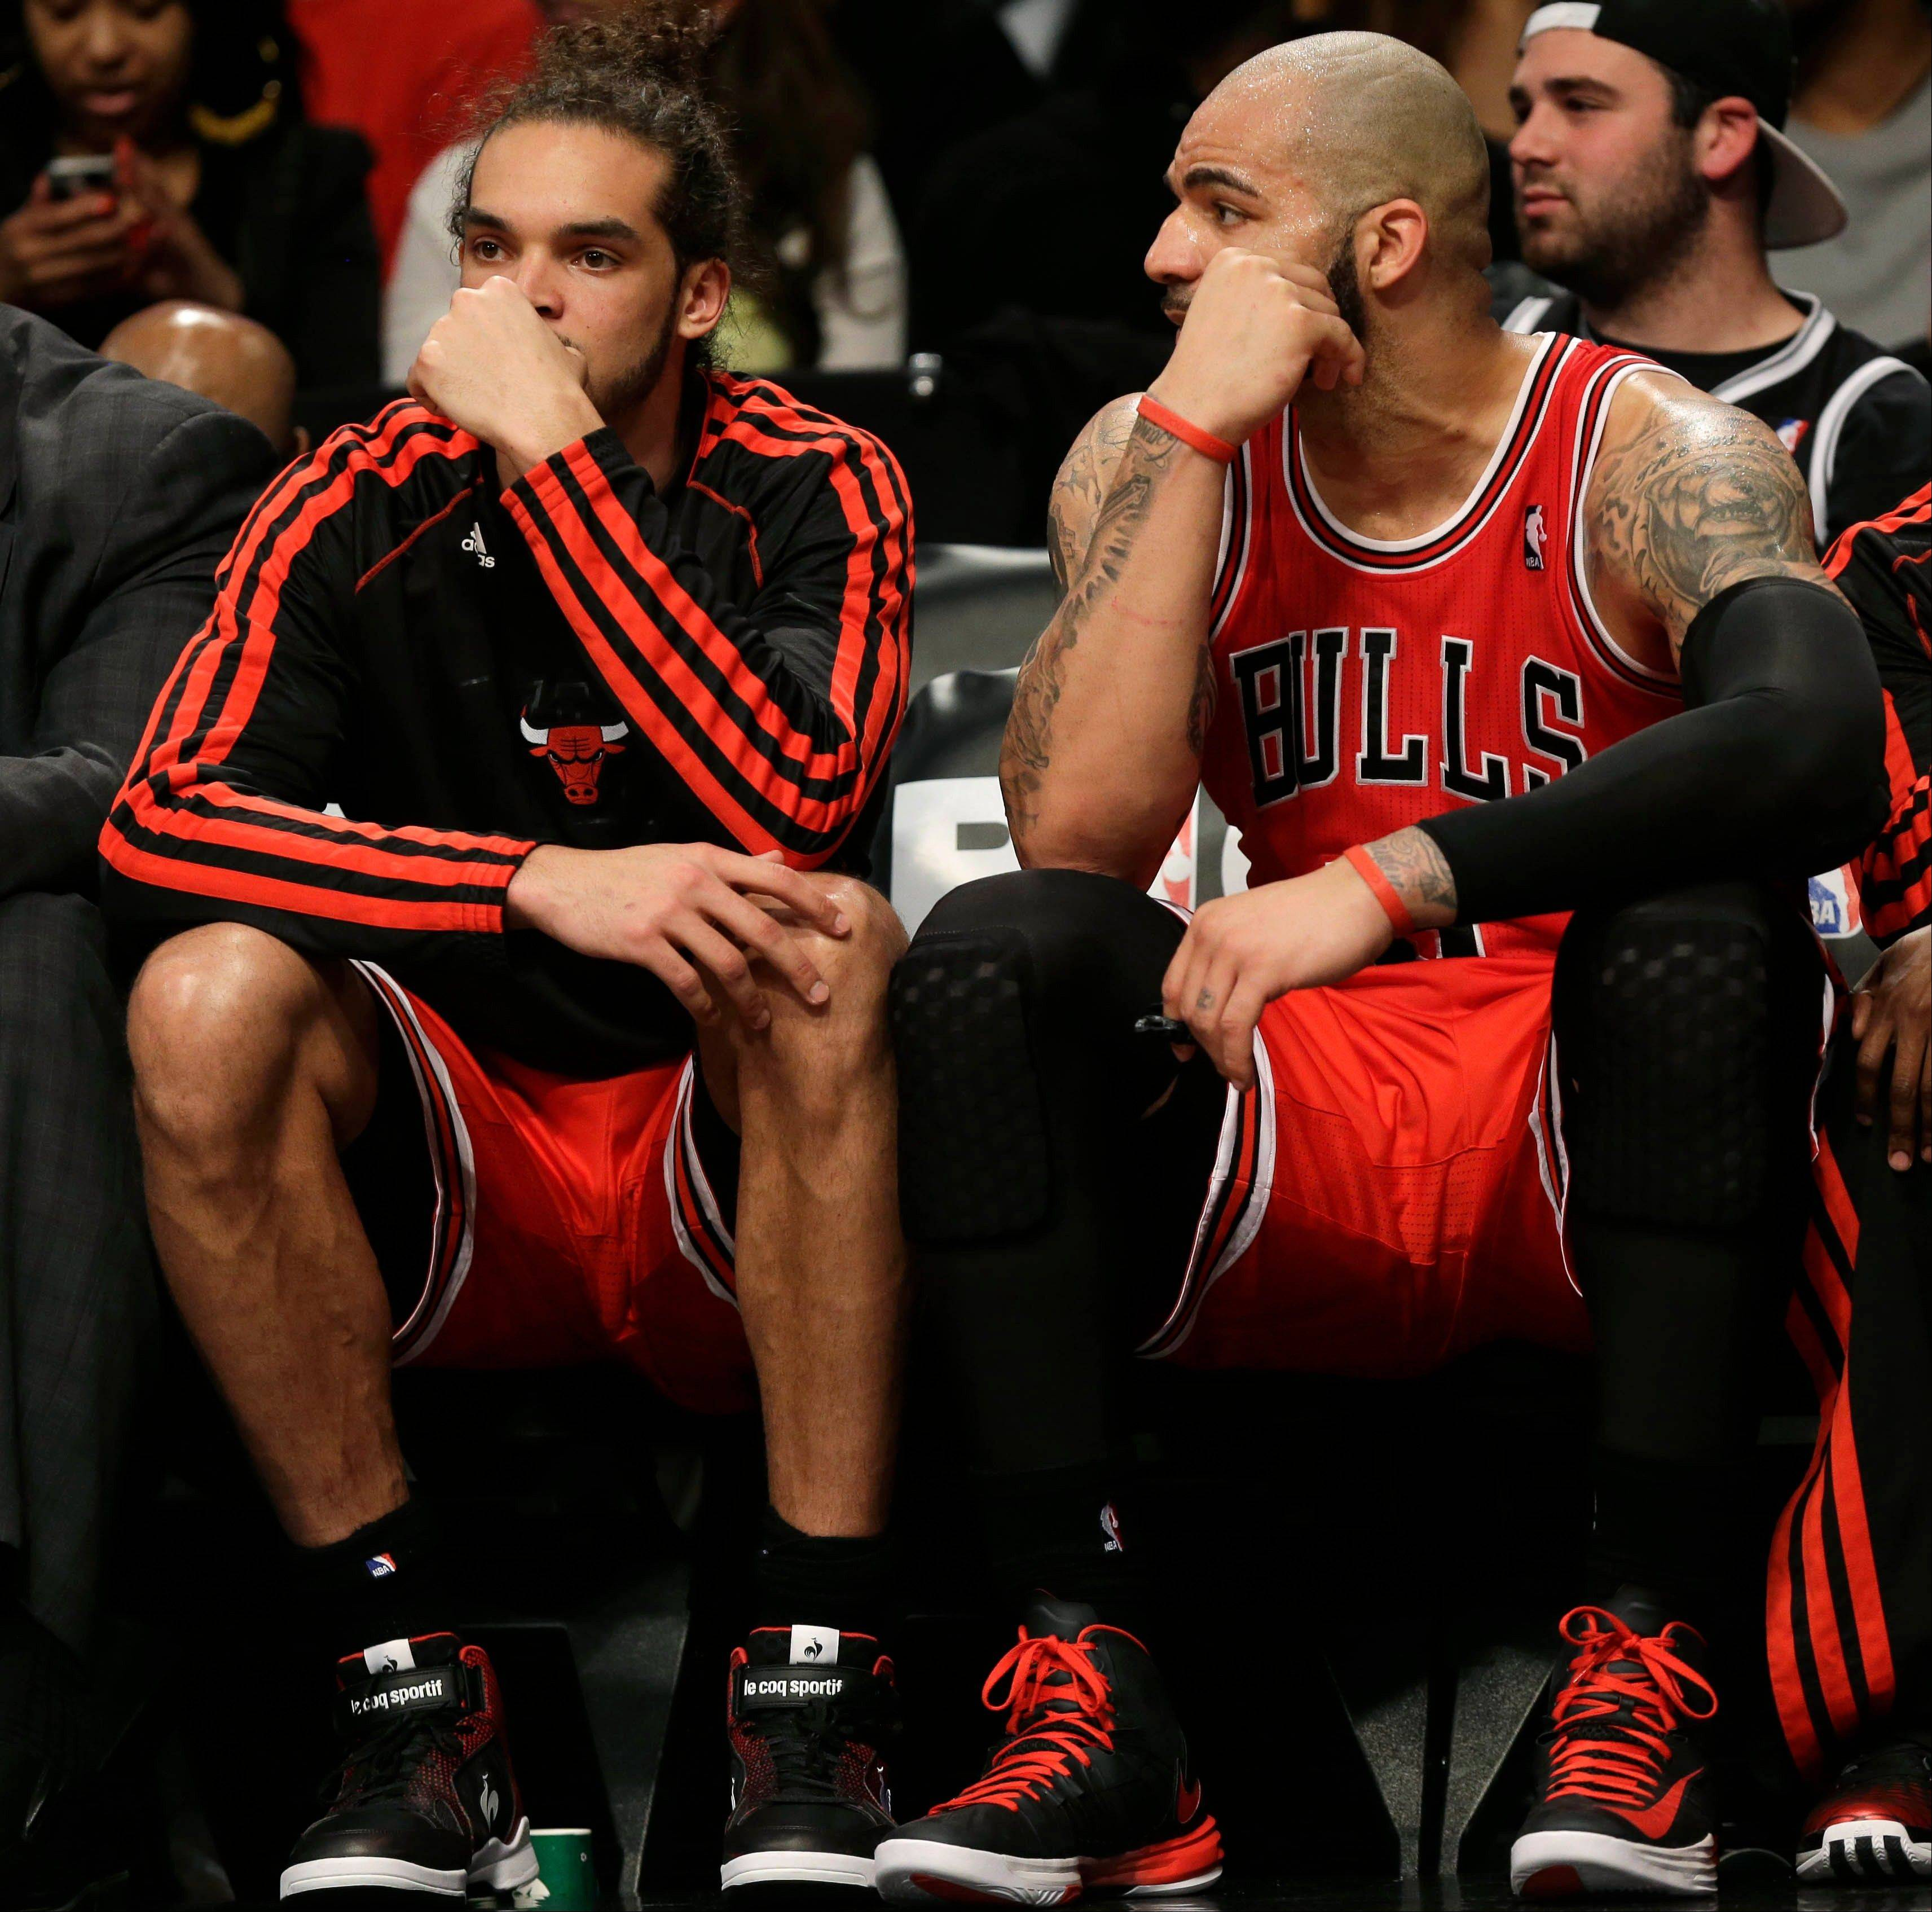 The Bulls� Joakim Noah, left, and Carlos Boozer watch the end of the game against the Brooklyn Nets from the bench during the second half of Game 1 in the first round of the NBA basketball playoffs at the Barclays Center, Saturday, April 20, 2013, in New York. The Nets defeated the Bulls 106-89.